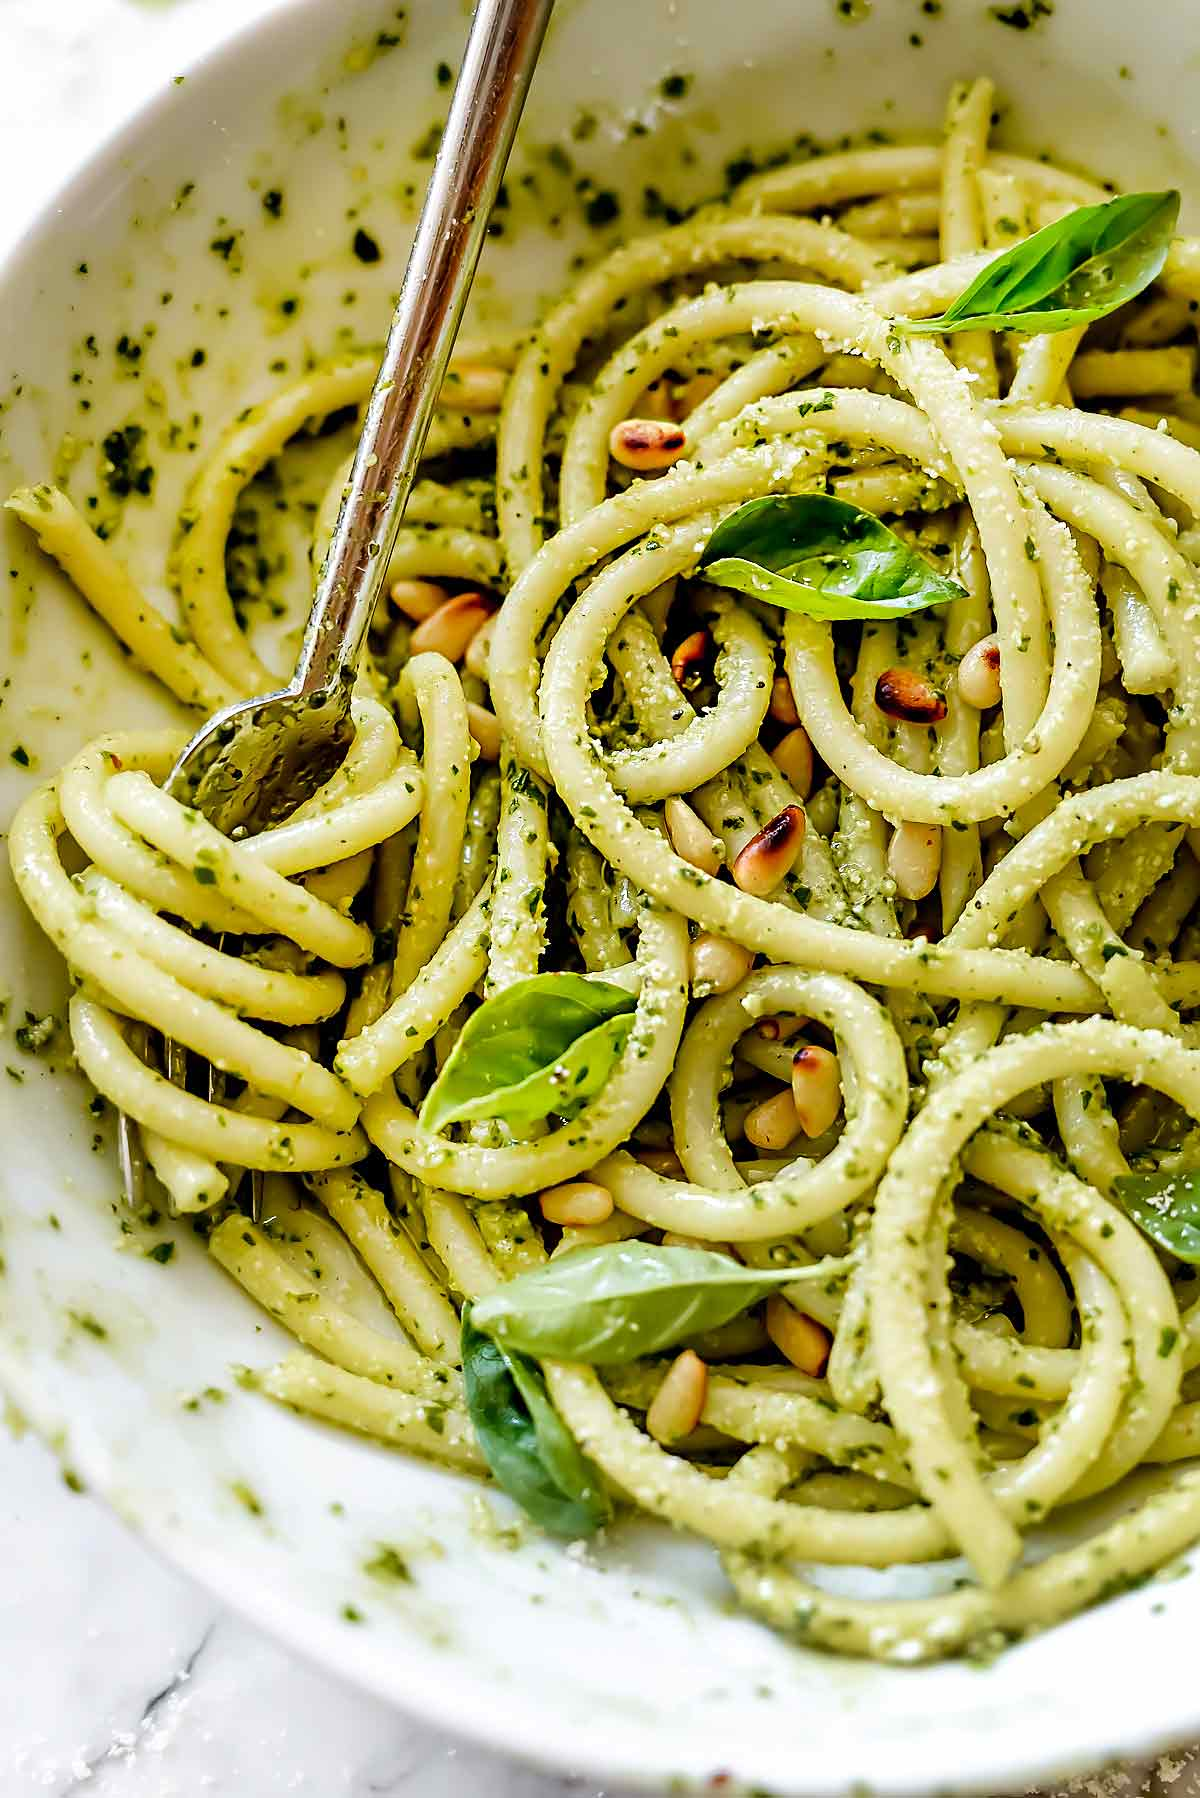 Easy Homemade Pesto Pasta Recipe